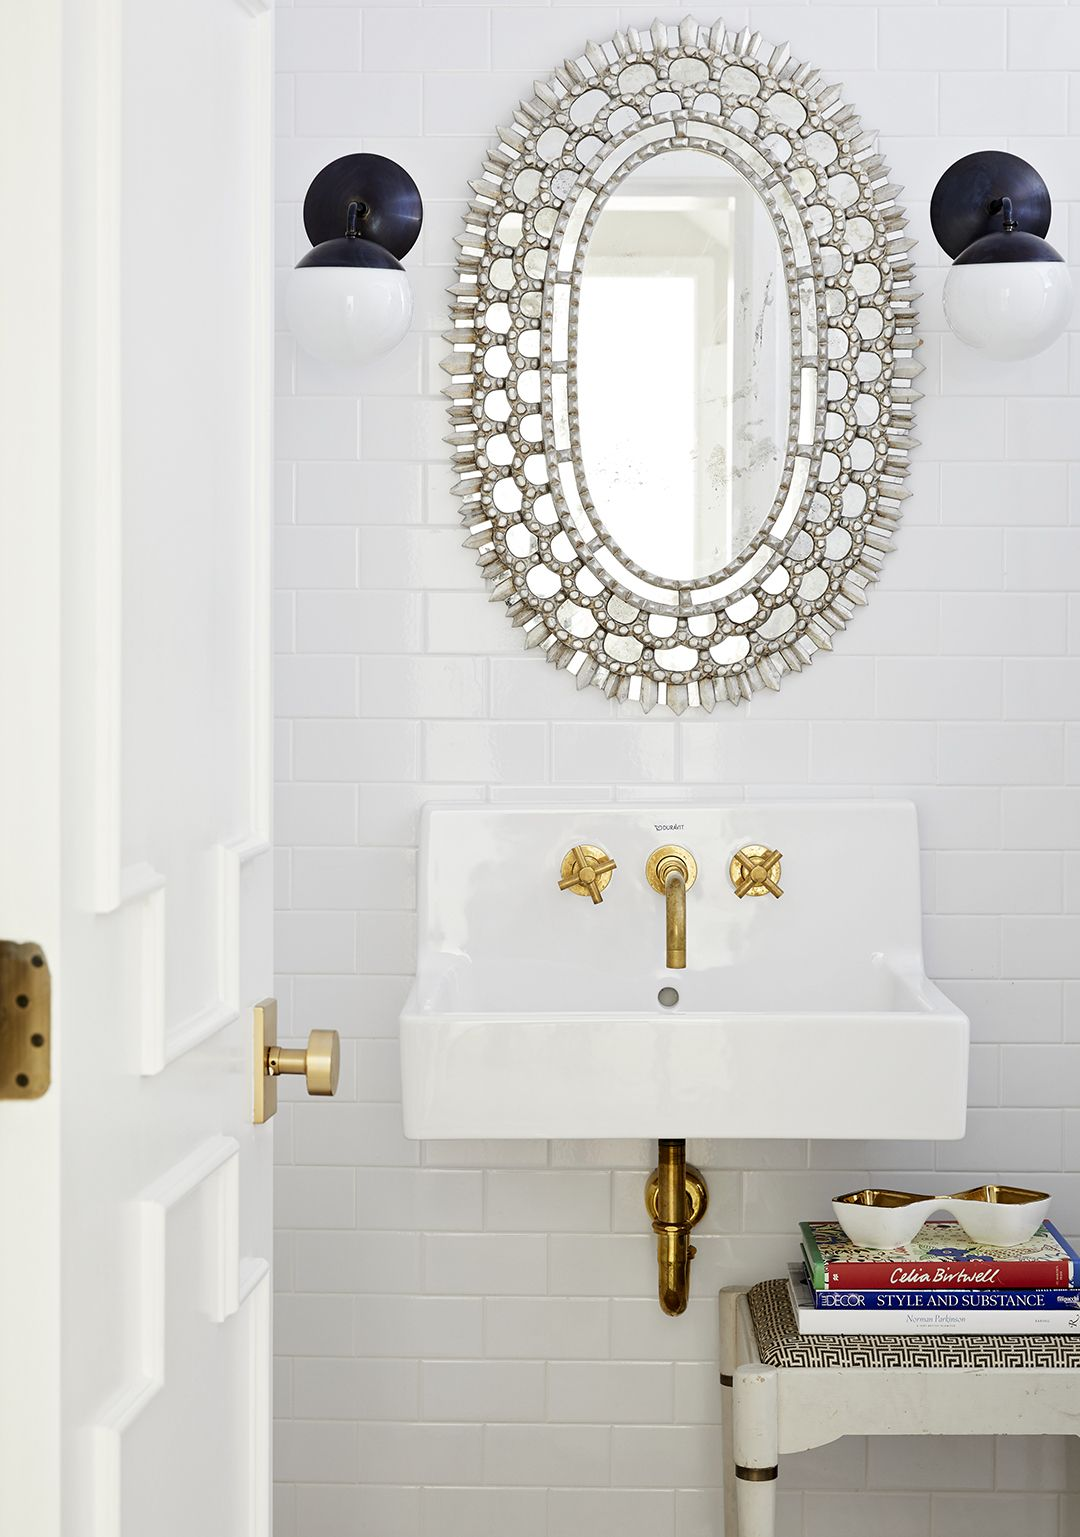 Superb The Most Effective Way To Clean A Bathroom Drain Cleaning Interior Design Ideas Gentotryabchikinfo